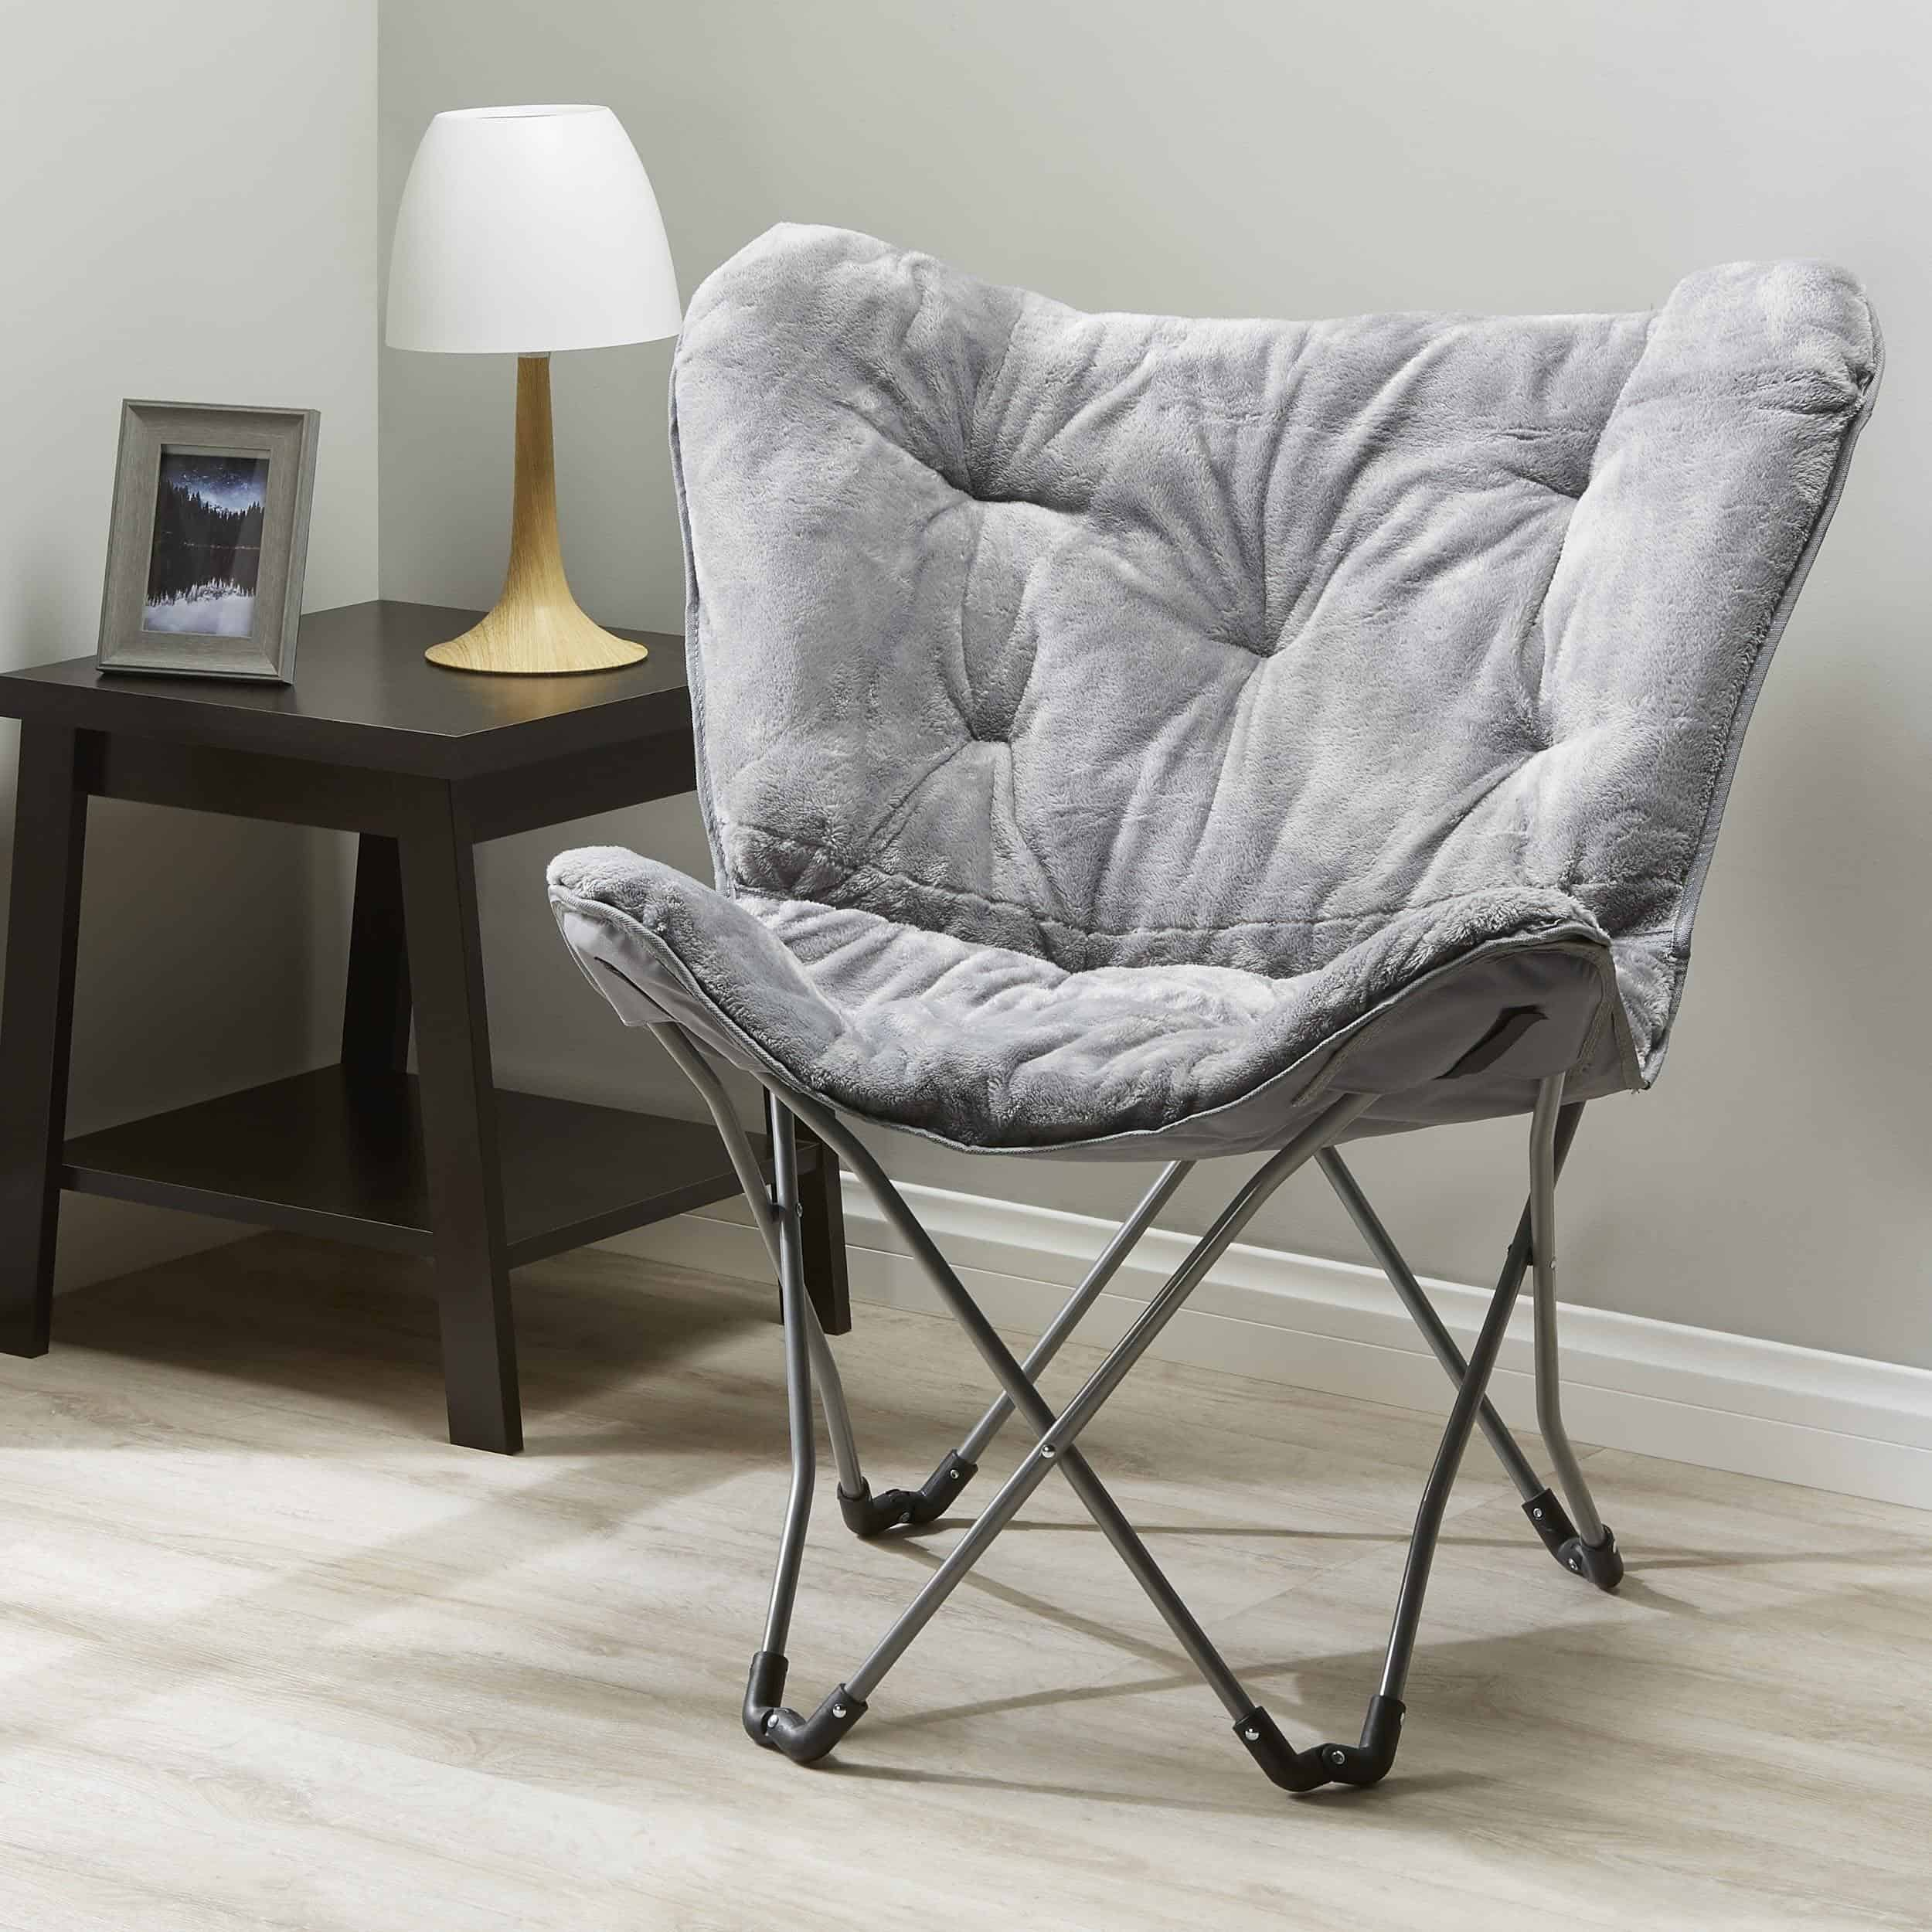 A COMFY CUSHIONED CHAIR WITH FAUX FUR